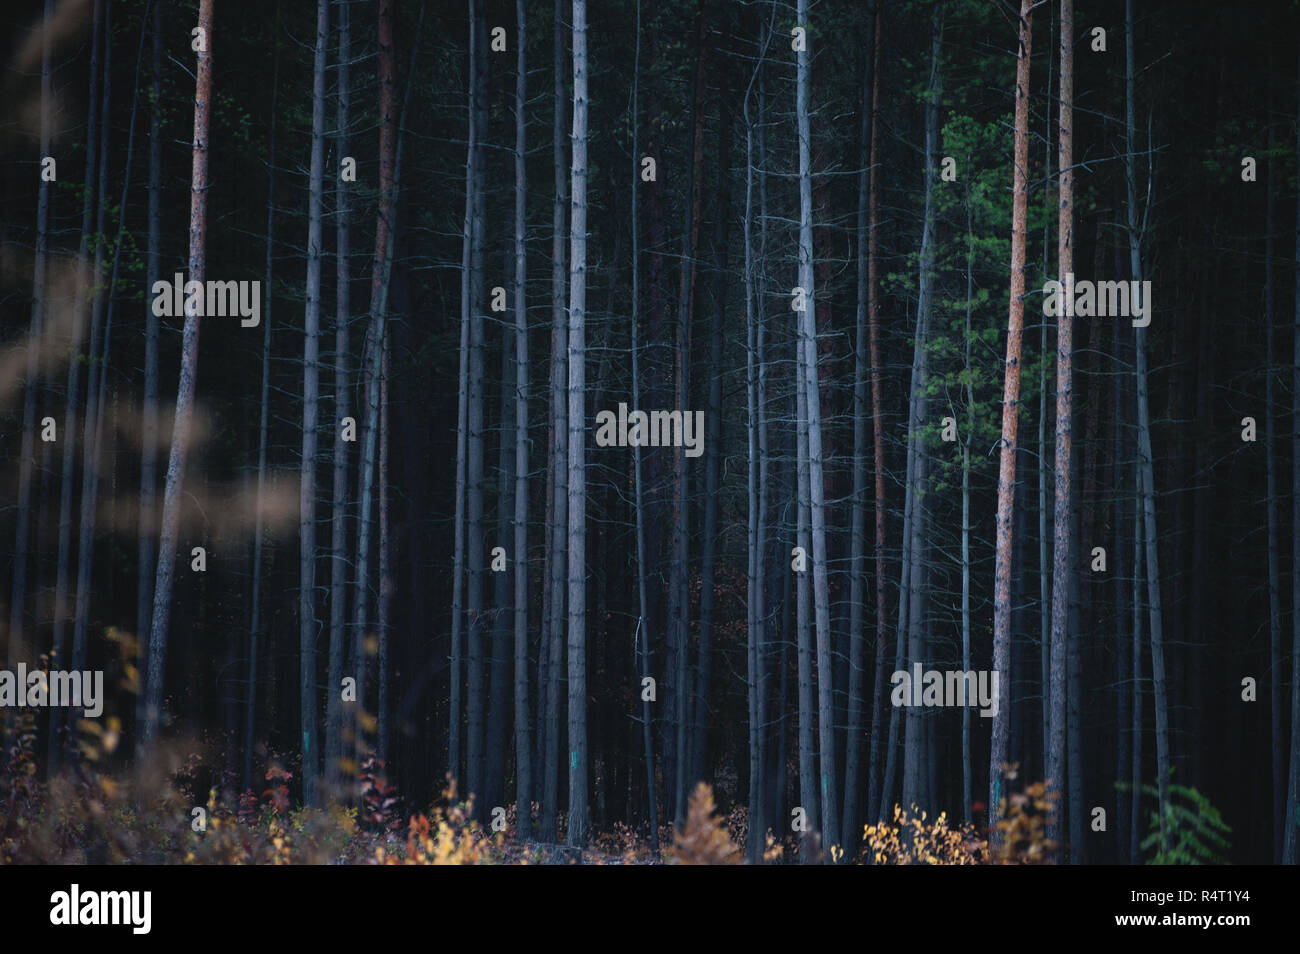 The Bark Trunks of Dense Coniferous Forest. High Trees. - Stock Image